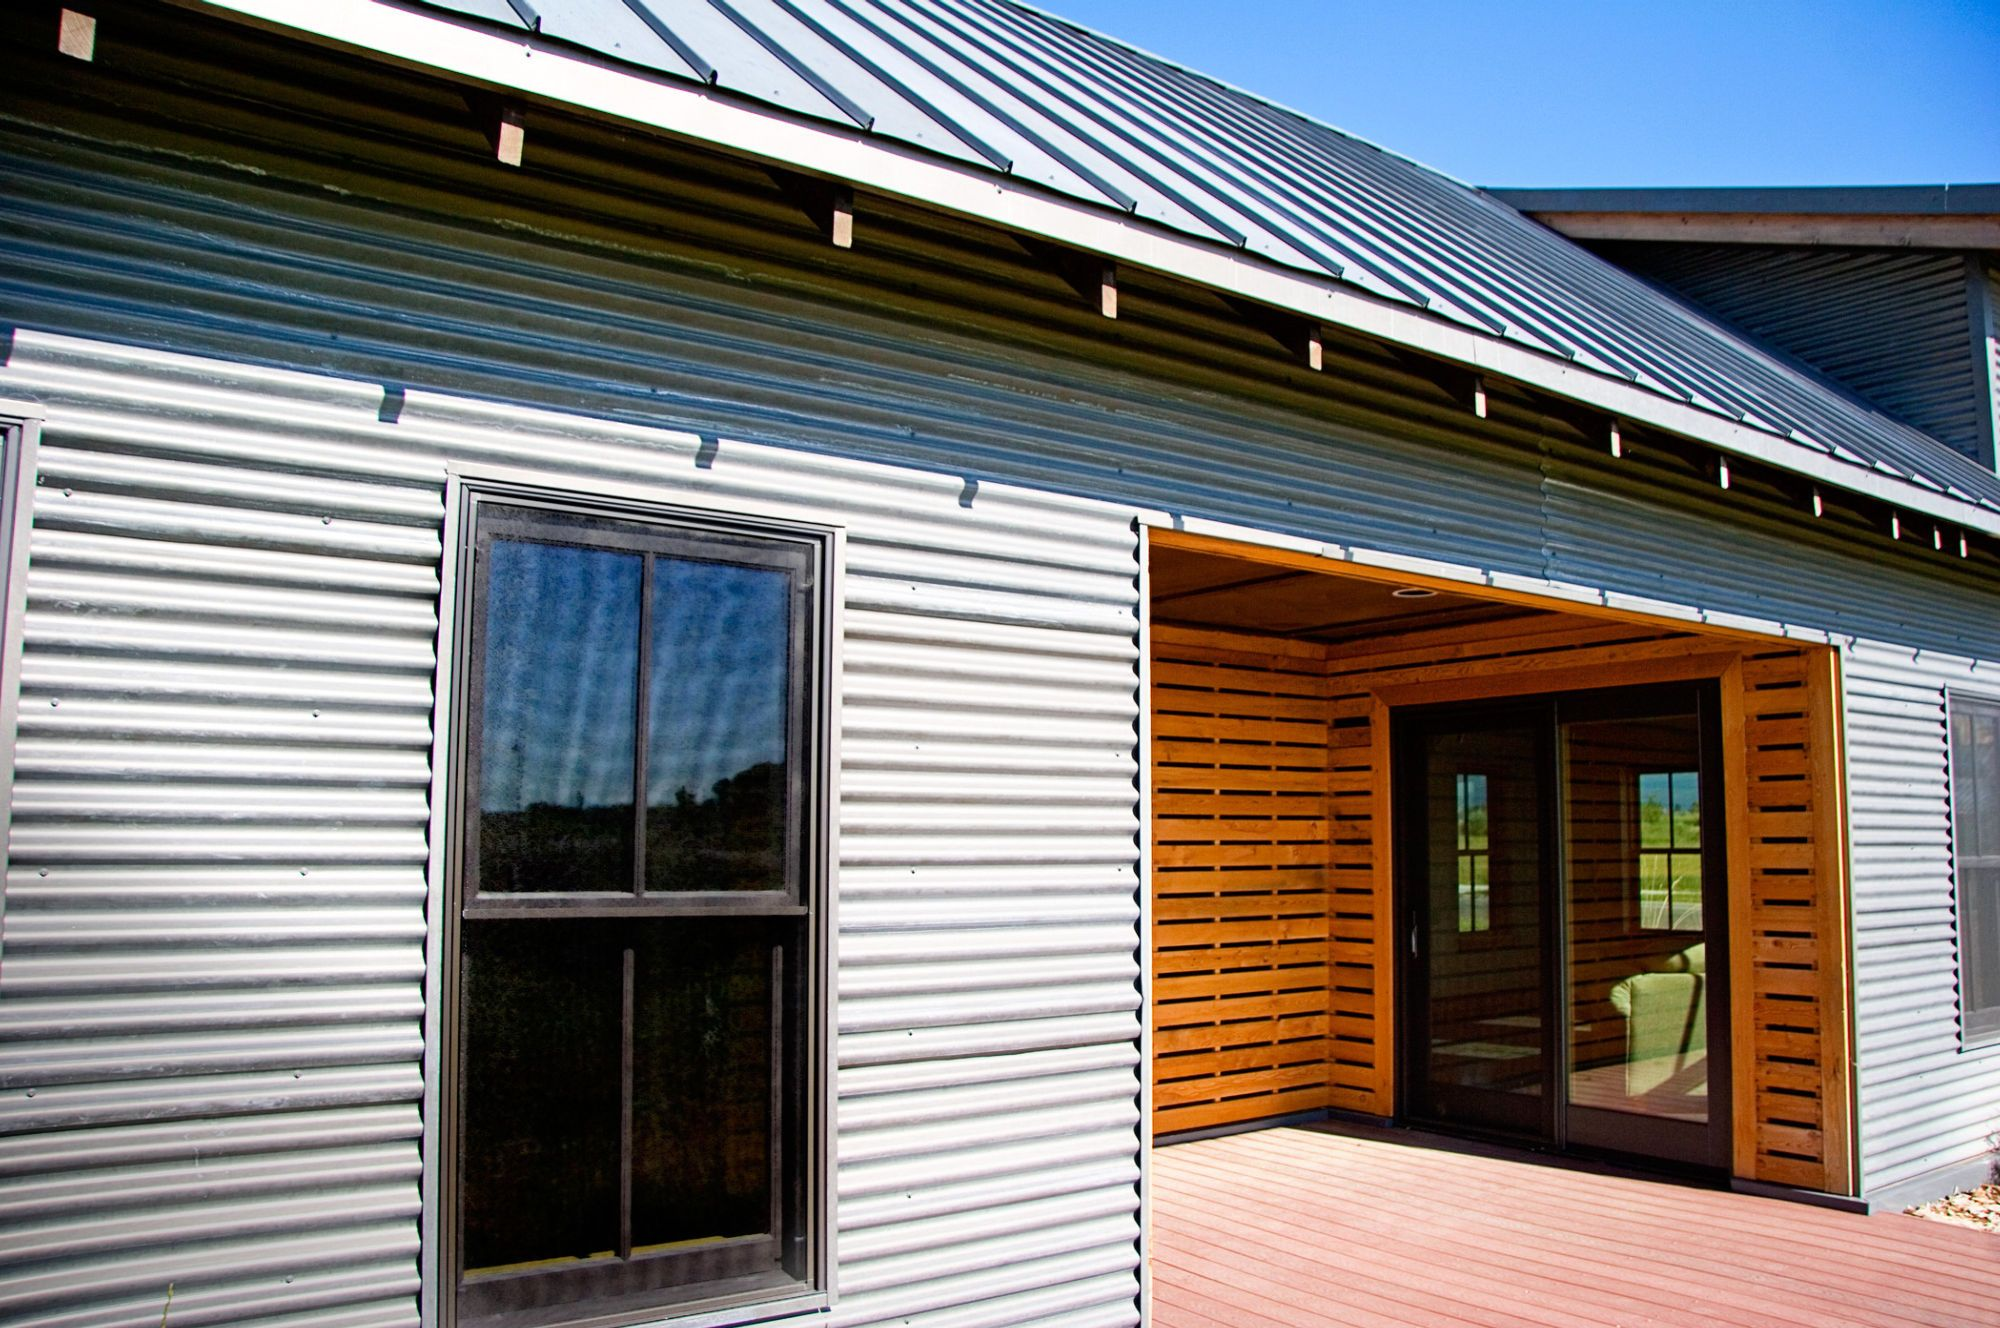 7 Popular Siding Materials To Consider: Decorate Exterior Using Corrugated Metal Siding For